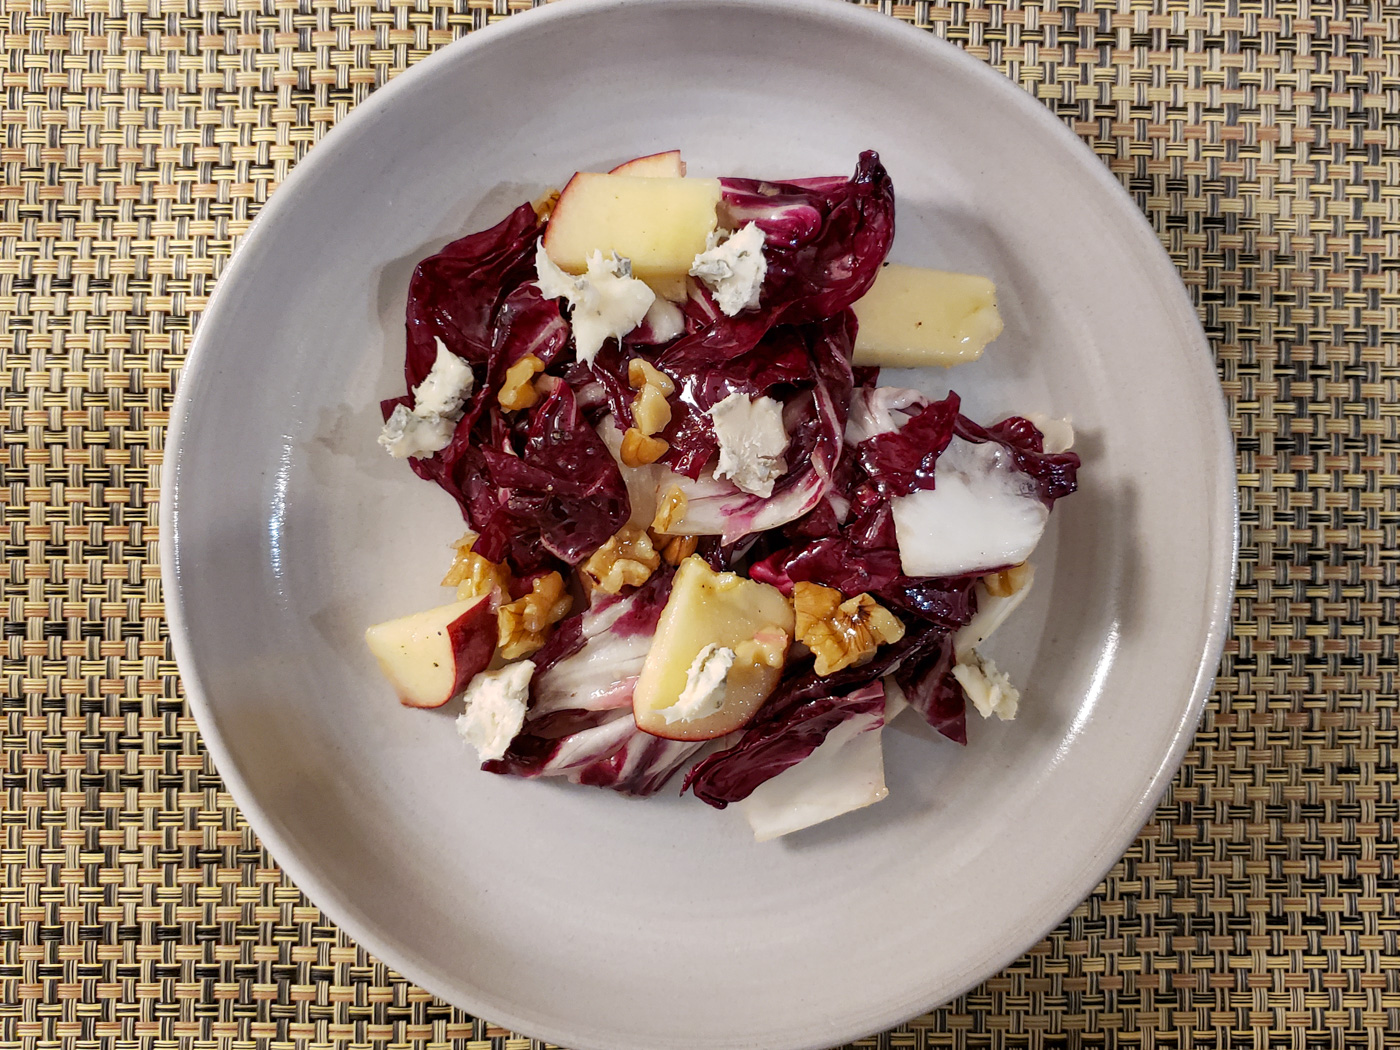 Radicchio Salad with Apples, Walnuts, and Gorgonzola